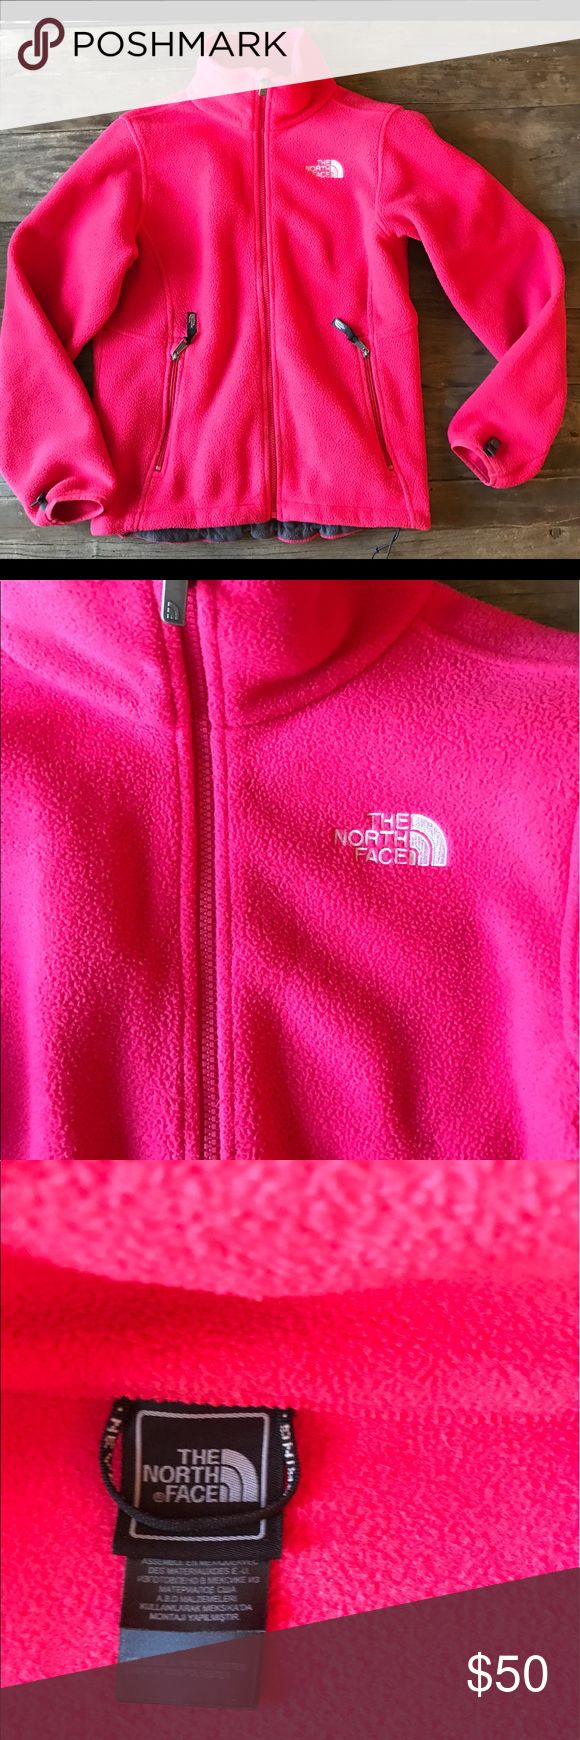 Women's North Face Zip Up Fleece Gently used hot pink women's North Face zip up fleece. Size Medium. Very soft. North Face Sweaters